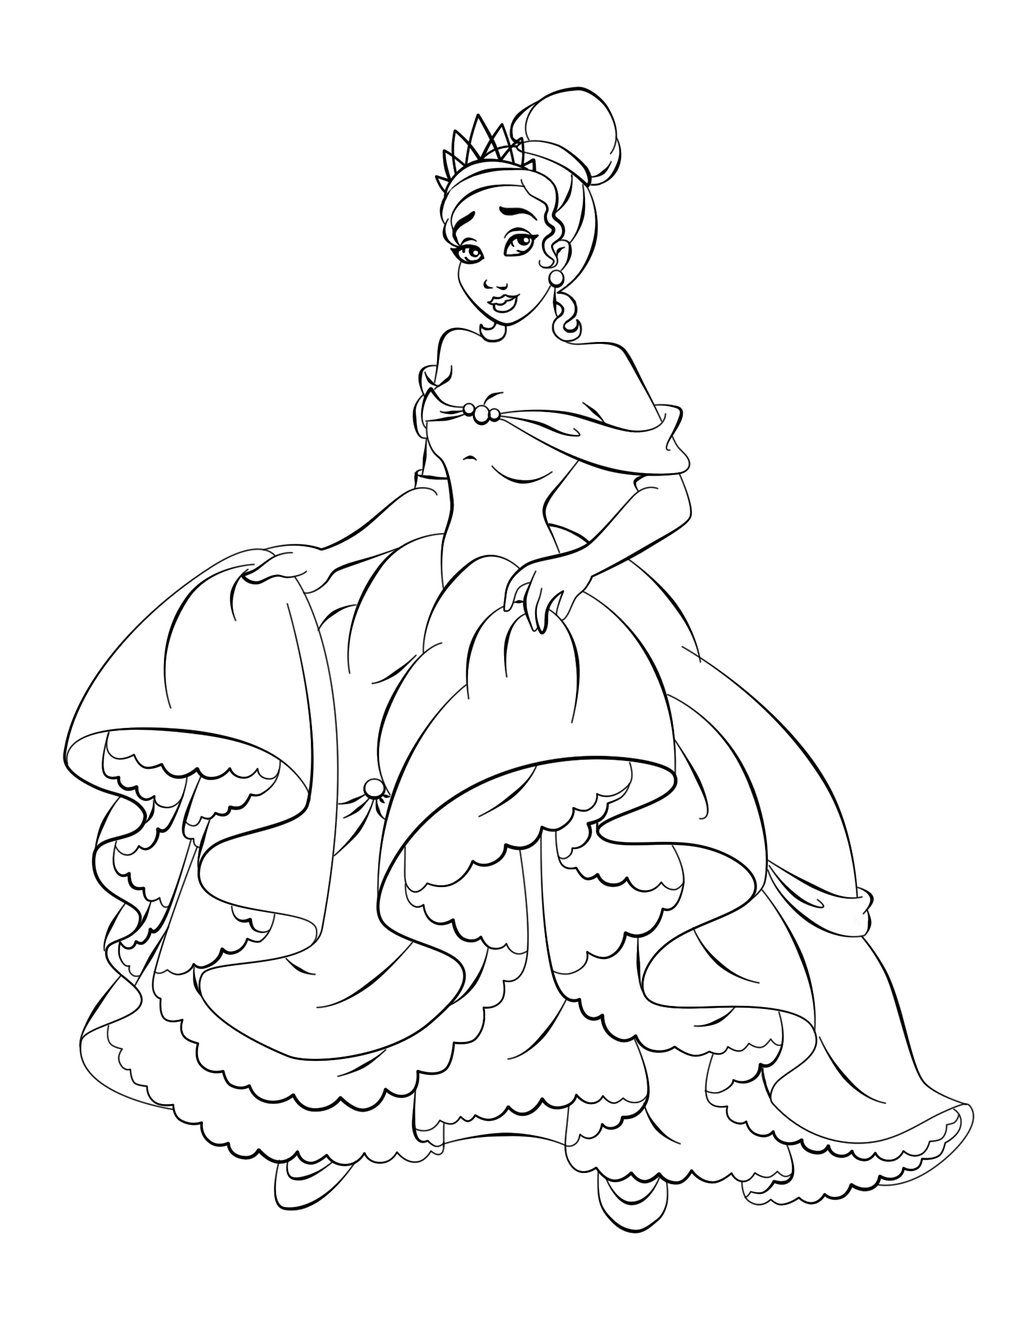 free coloring pages of princes - photo#20